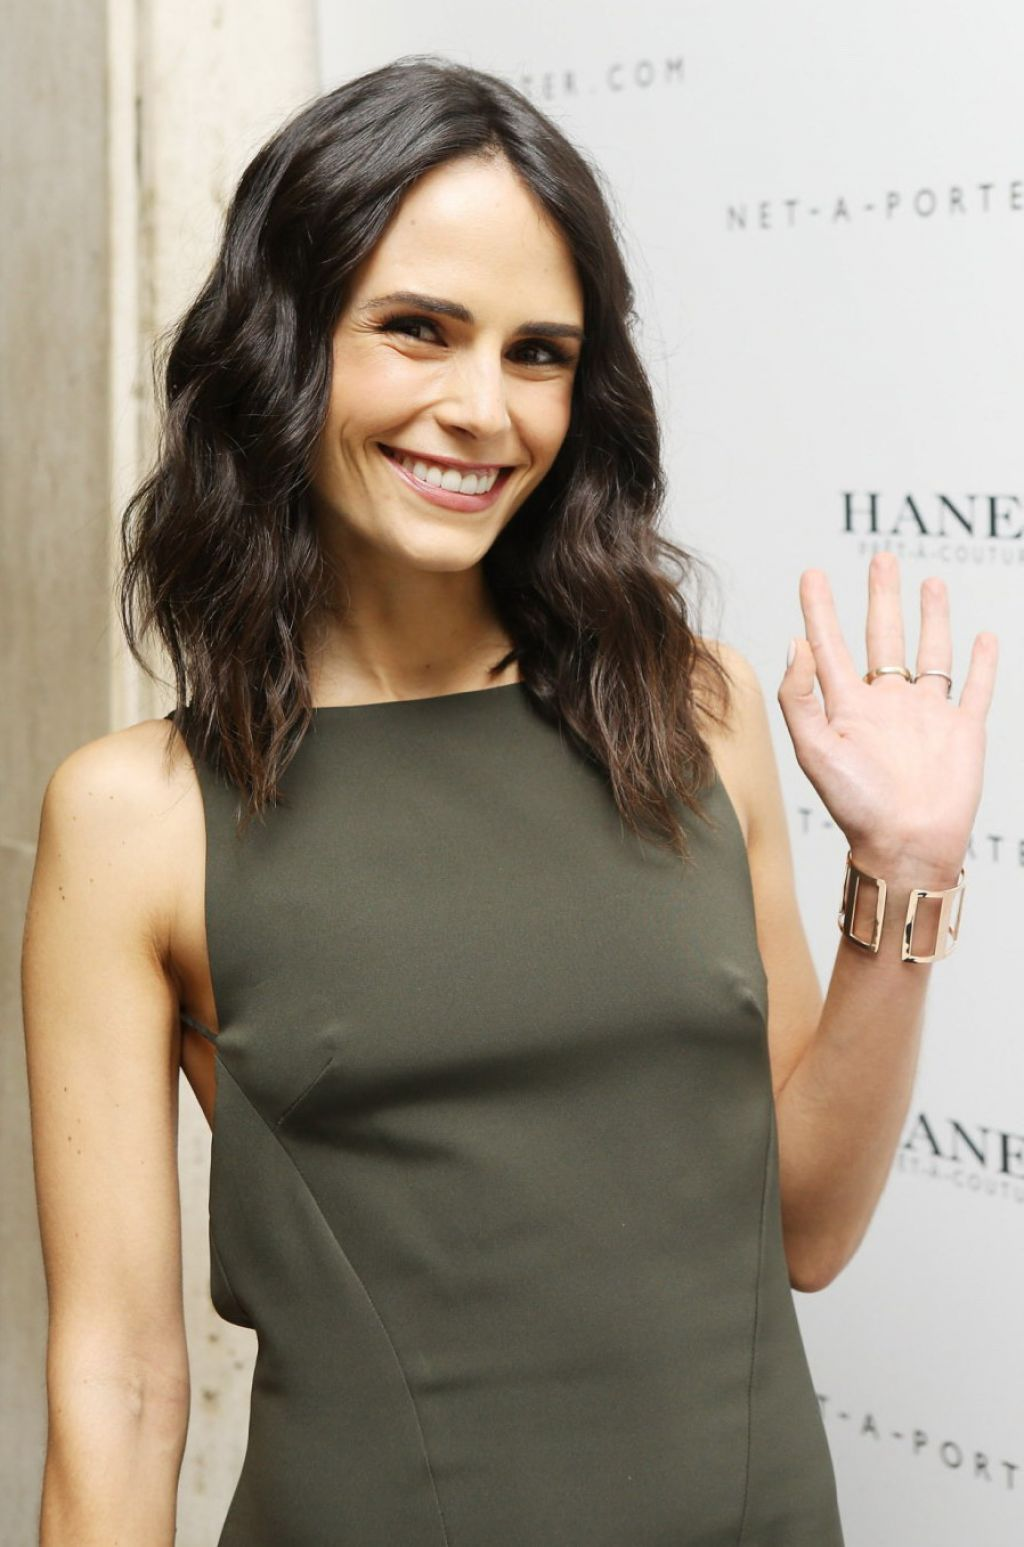 Jordana Brewster Attends Net-A-Porter Hosts Haney Pret-A-Couture Launch